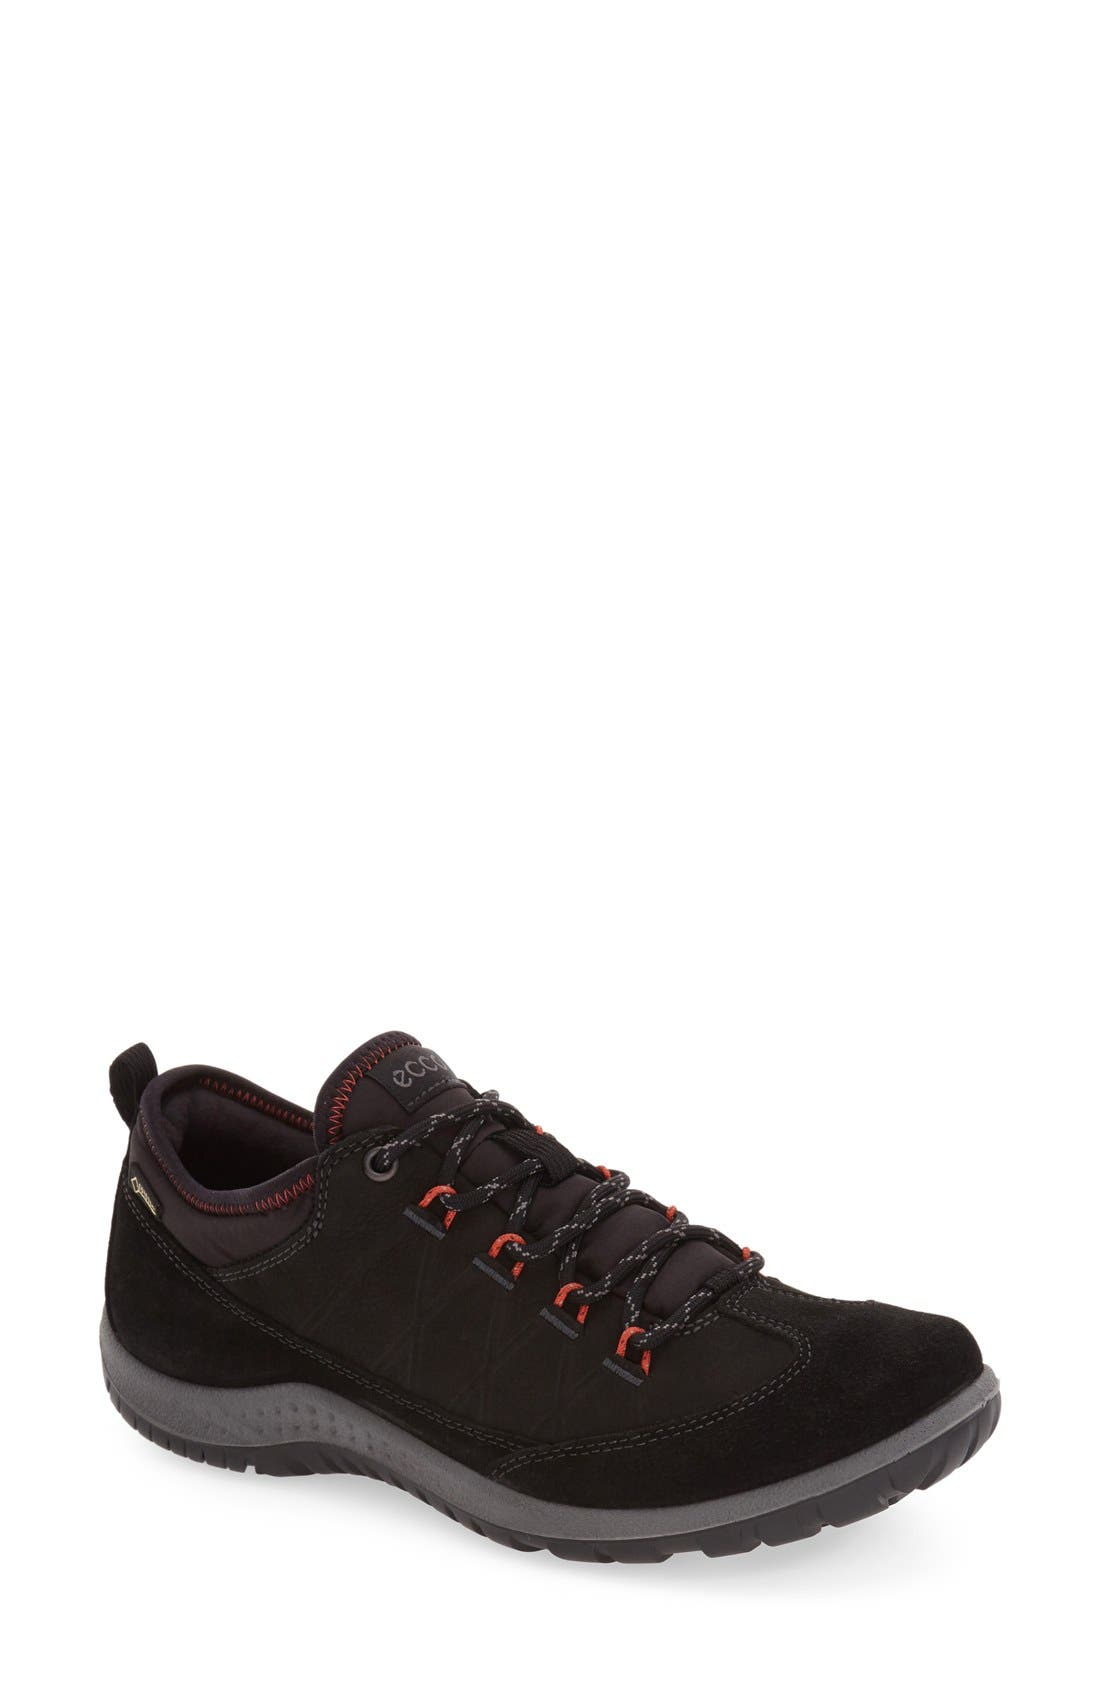 Alternate Image 1 Selected - ECCO 'Aspina GTX' Waterproof Sneaker (Women)